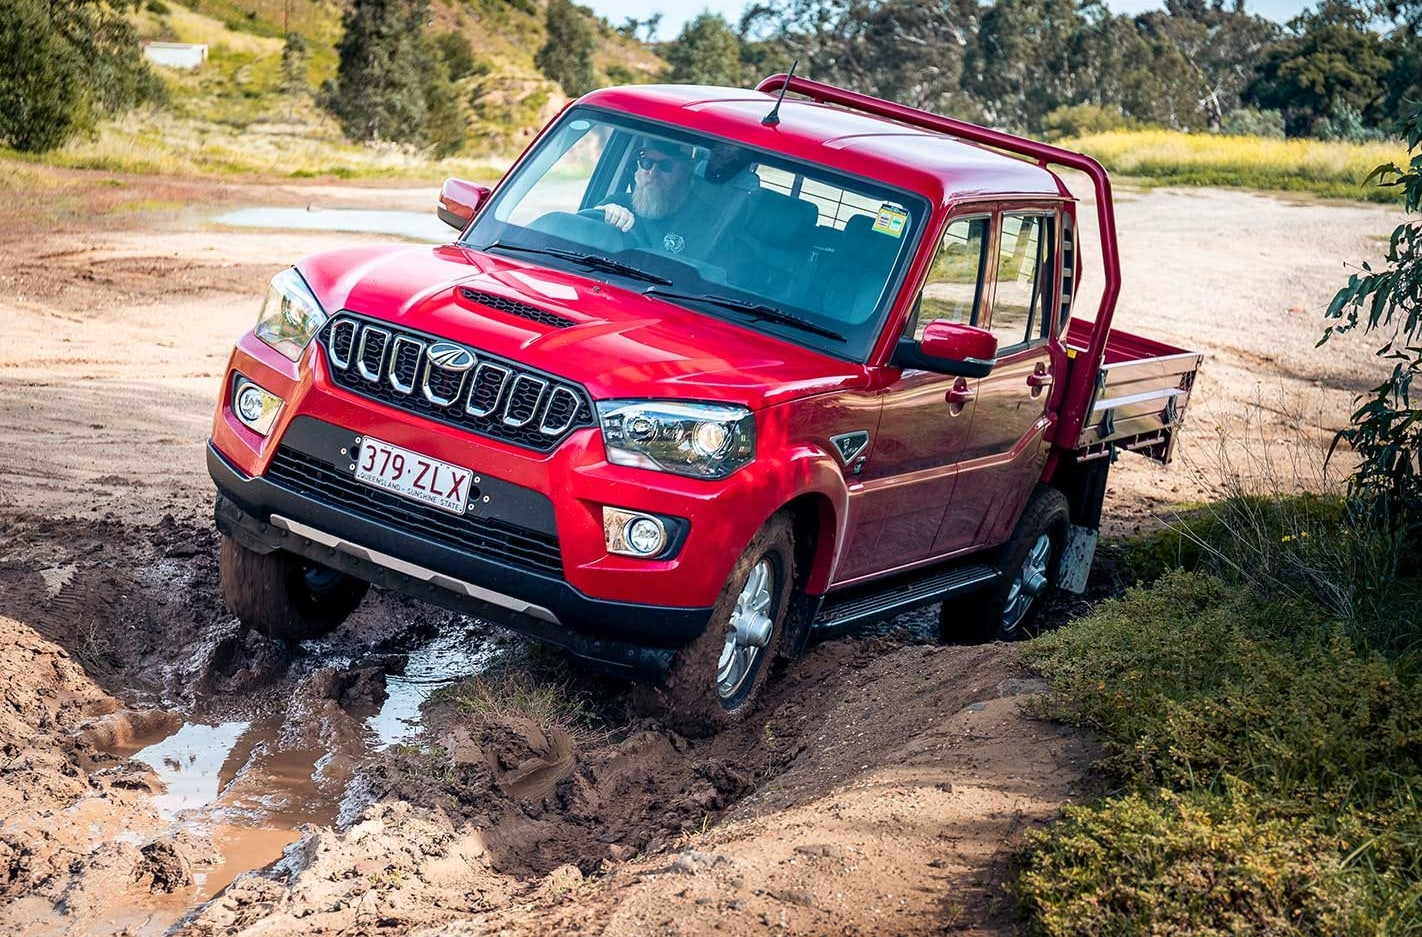 Facelifted Mahindra Pik-Up S10 off-road